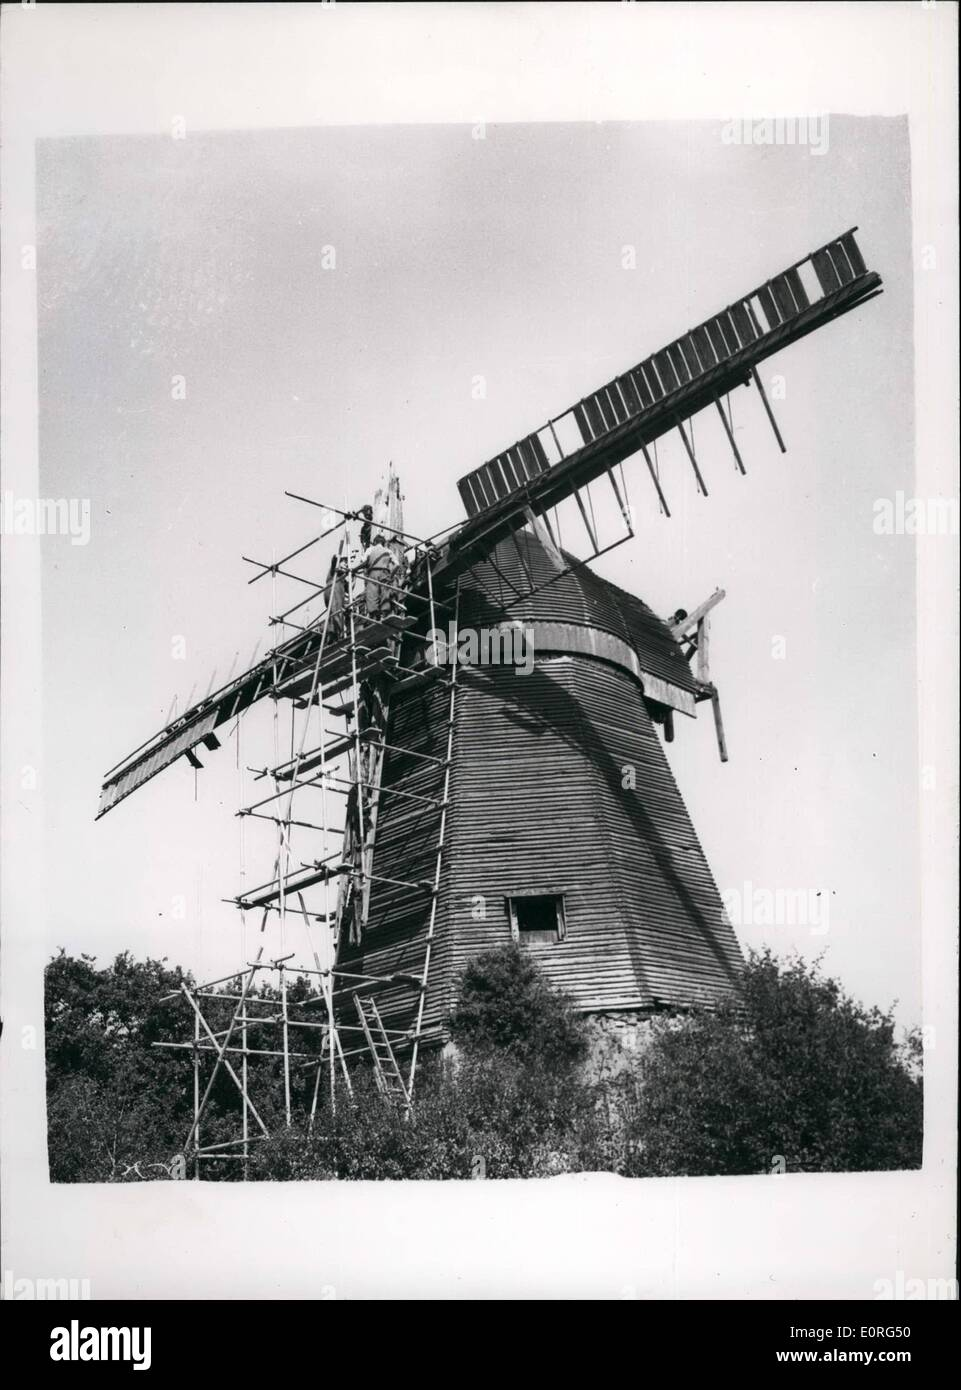 Aug. 08, 1959 - Ancient Sussex Windmill is being dismantled to be re-erected in Surrey: The famous old Jolesfield Windmill, built about 1970 at Littleworth, near Partridge Green, Sussex is now being dismantled, despite protests from residents. The 170-year-old mill, a smock mill (one in which the cap and sails only revolve) is to be re-erected and restored to full working order in the grounds of the 13th century Gatwick Manor, on the London to Brighton road. Mr Edwin Hole, who is one of Britain's few remaning millwrights, is in charge of teh dismantling operations. Mr - Stock Image